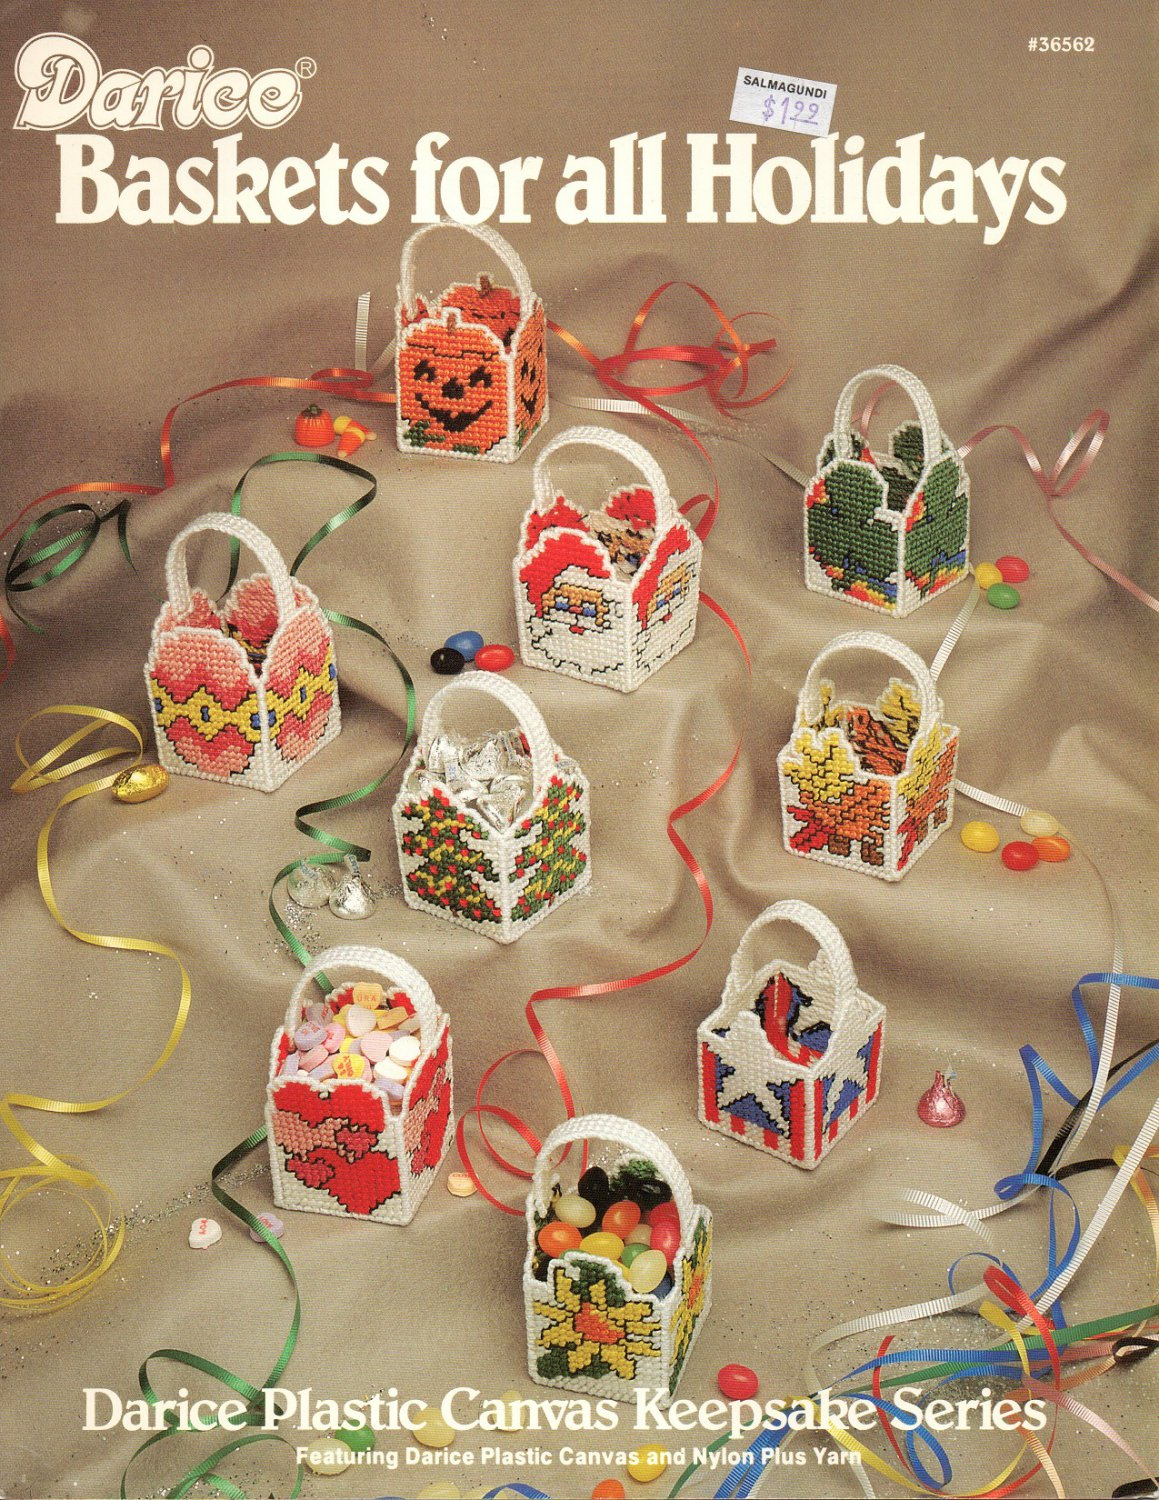 Darice Baskets For All Holidays 36562 Plastic Canvas Patterns